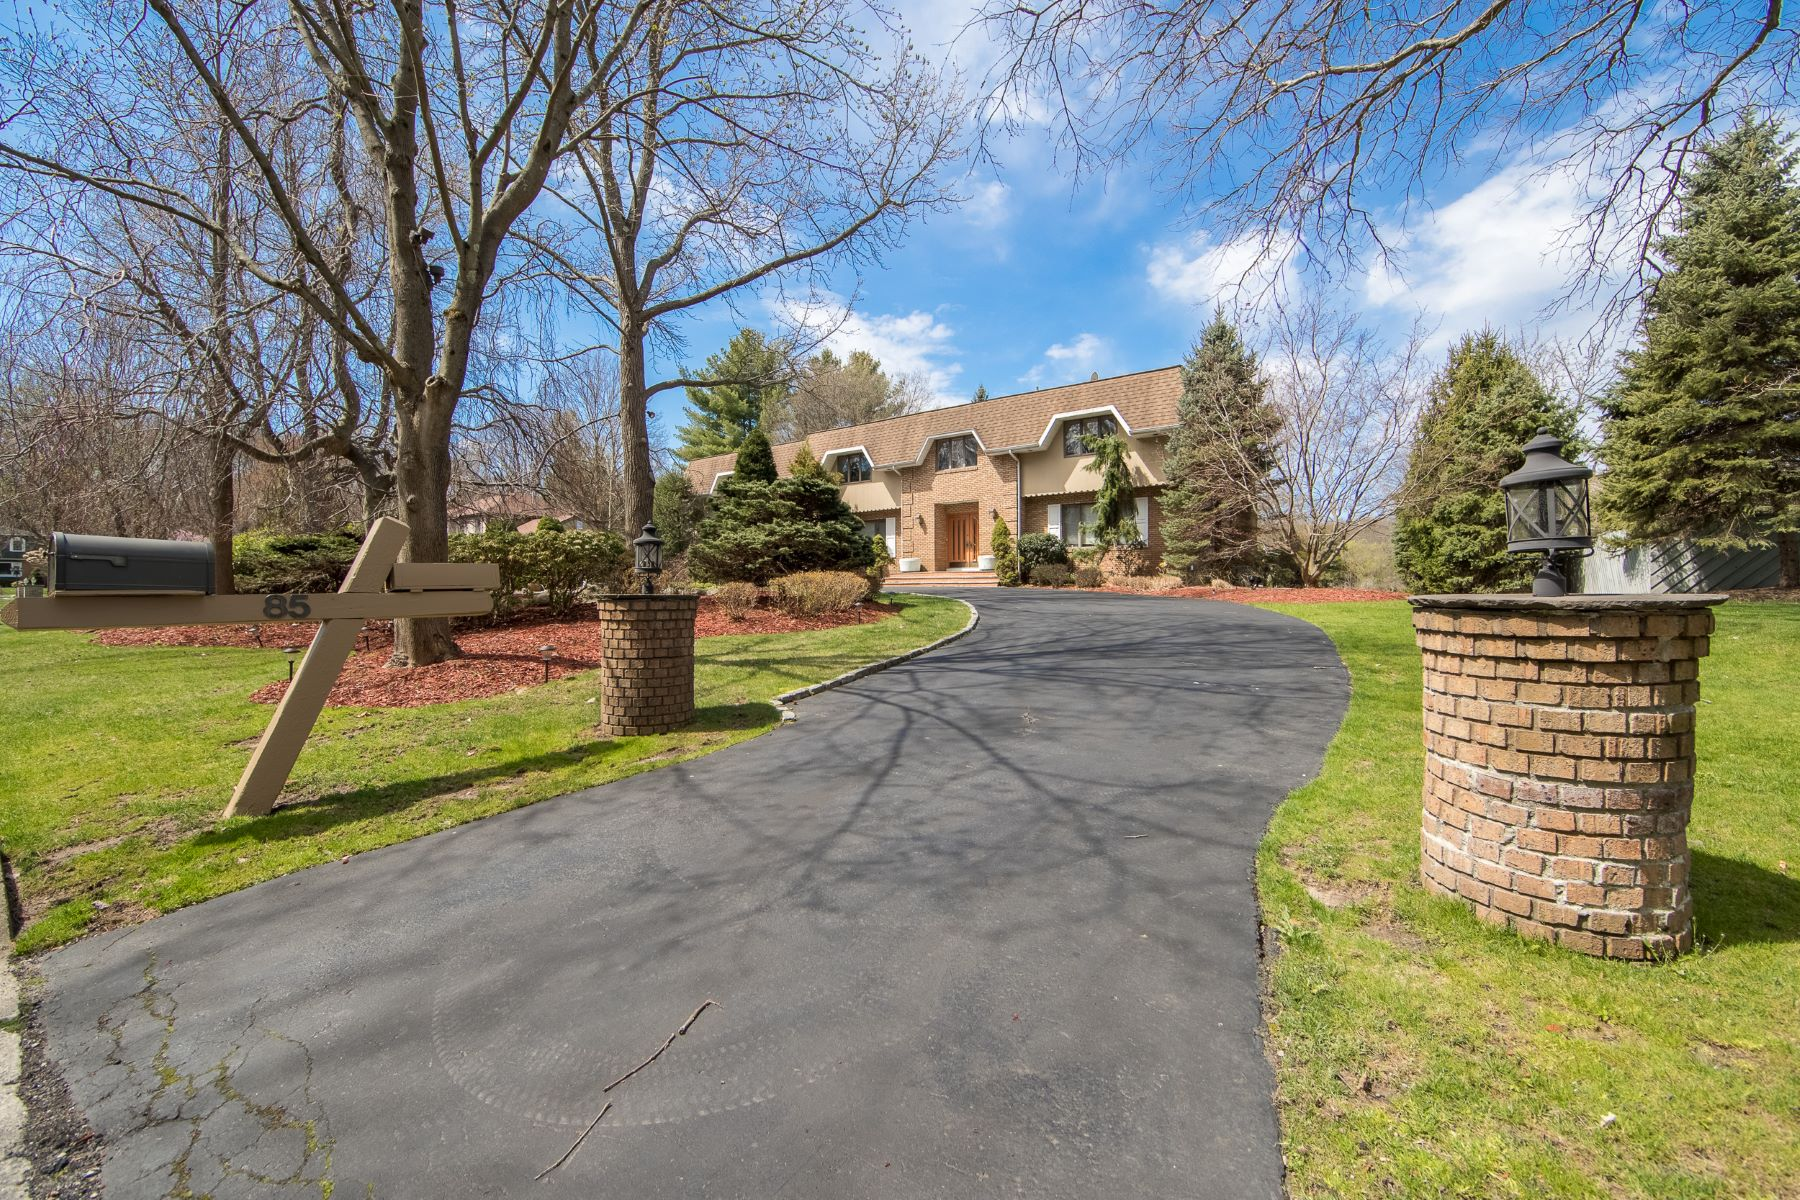 Single Family Home for Sale at French Manor style Colonial 85 Dyer Court, Norwood, New Jersey 07648 United States